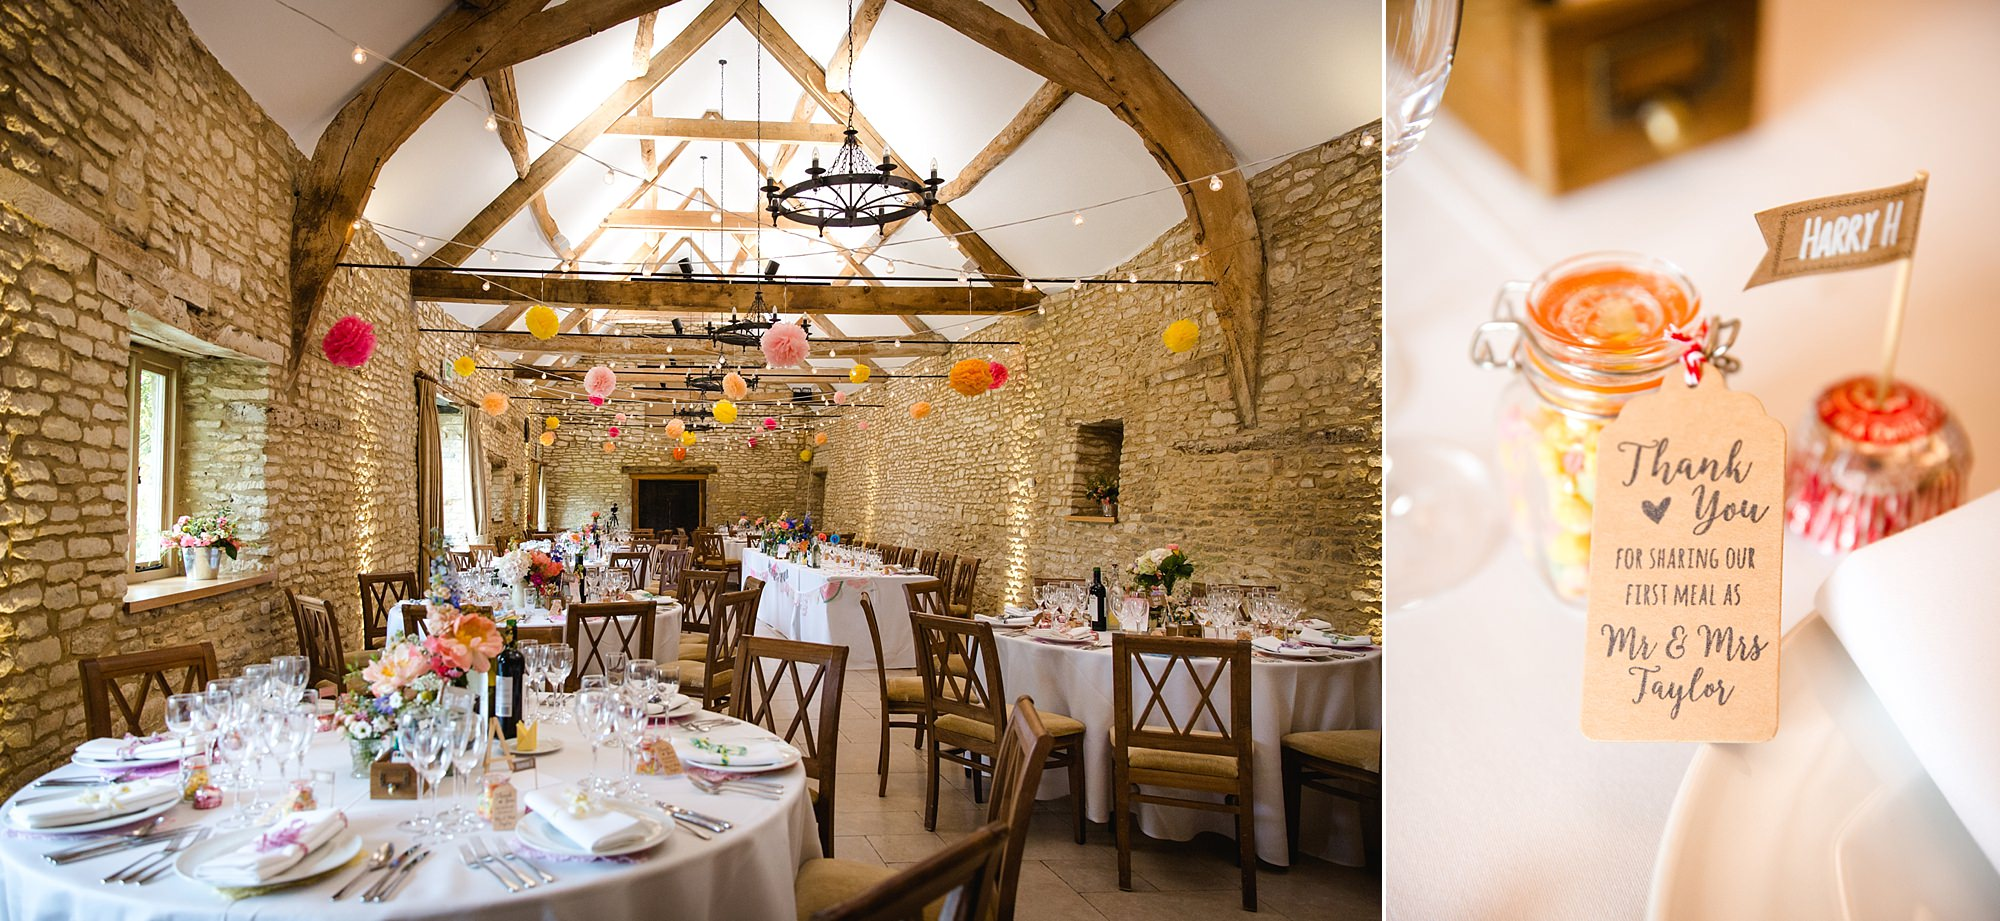 Caswell House Wedding interior decoration of barn